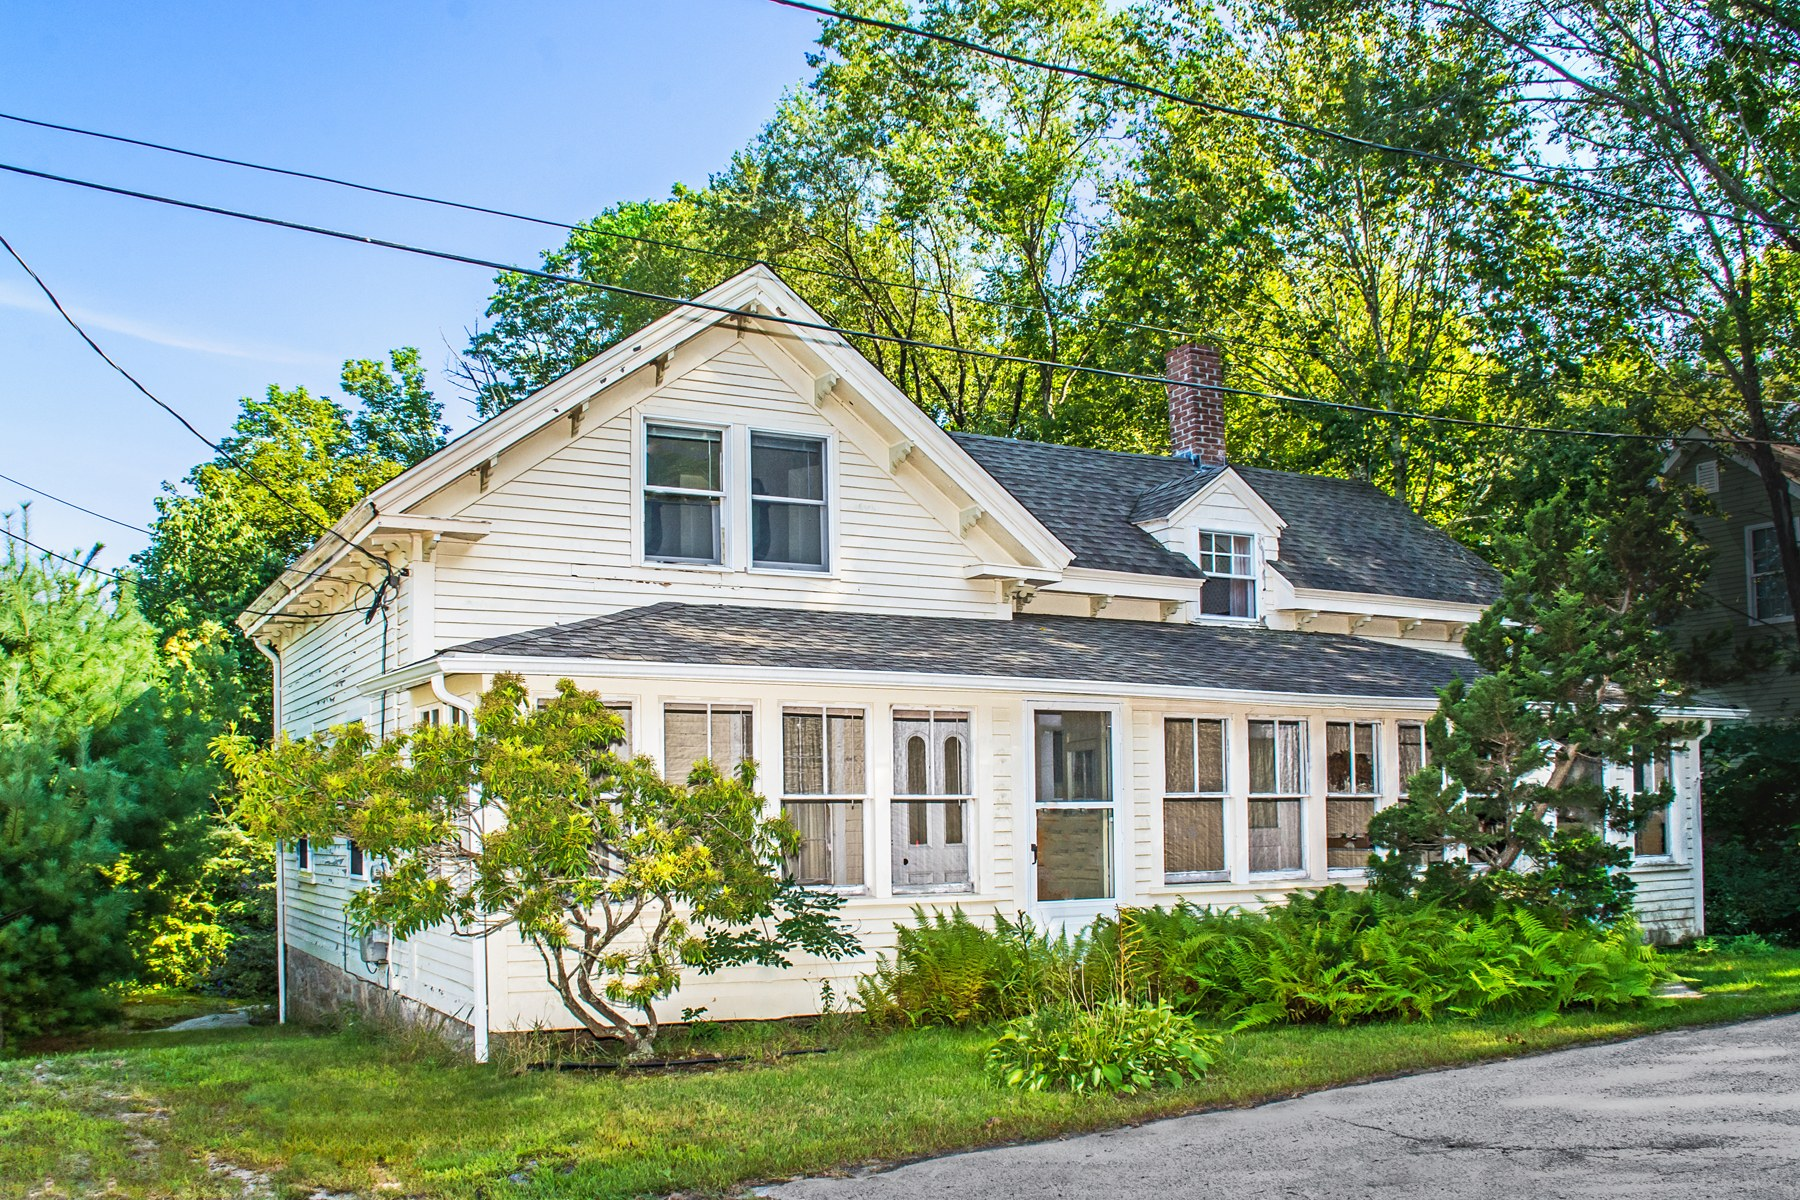 Single Family Homes for Sale at 14 Hill Street, Hopkinton, RI 14 Hill Street Hopkinton, Rhode Island 02832 United States